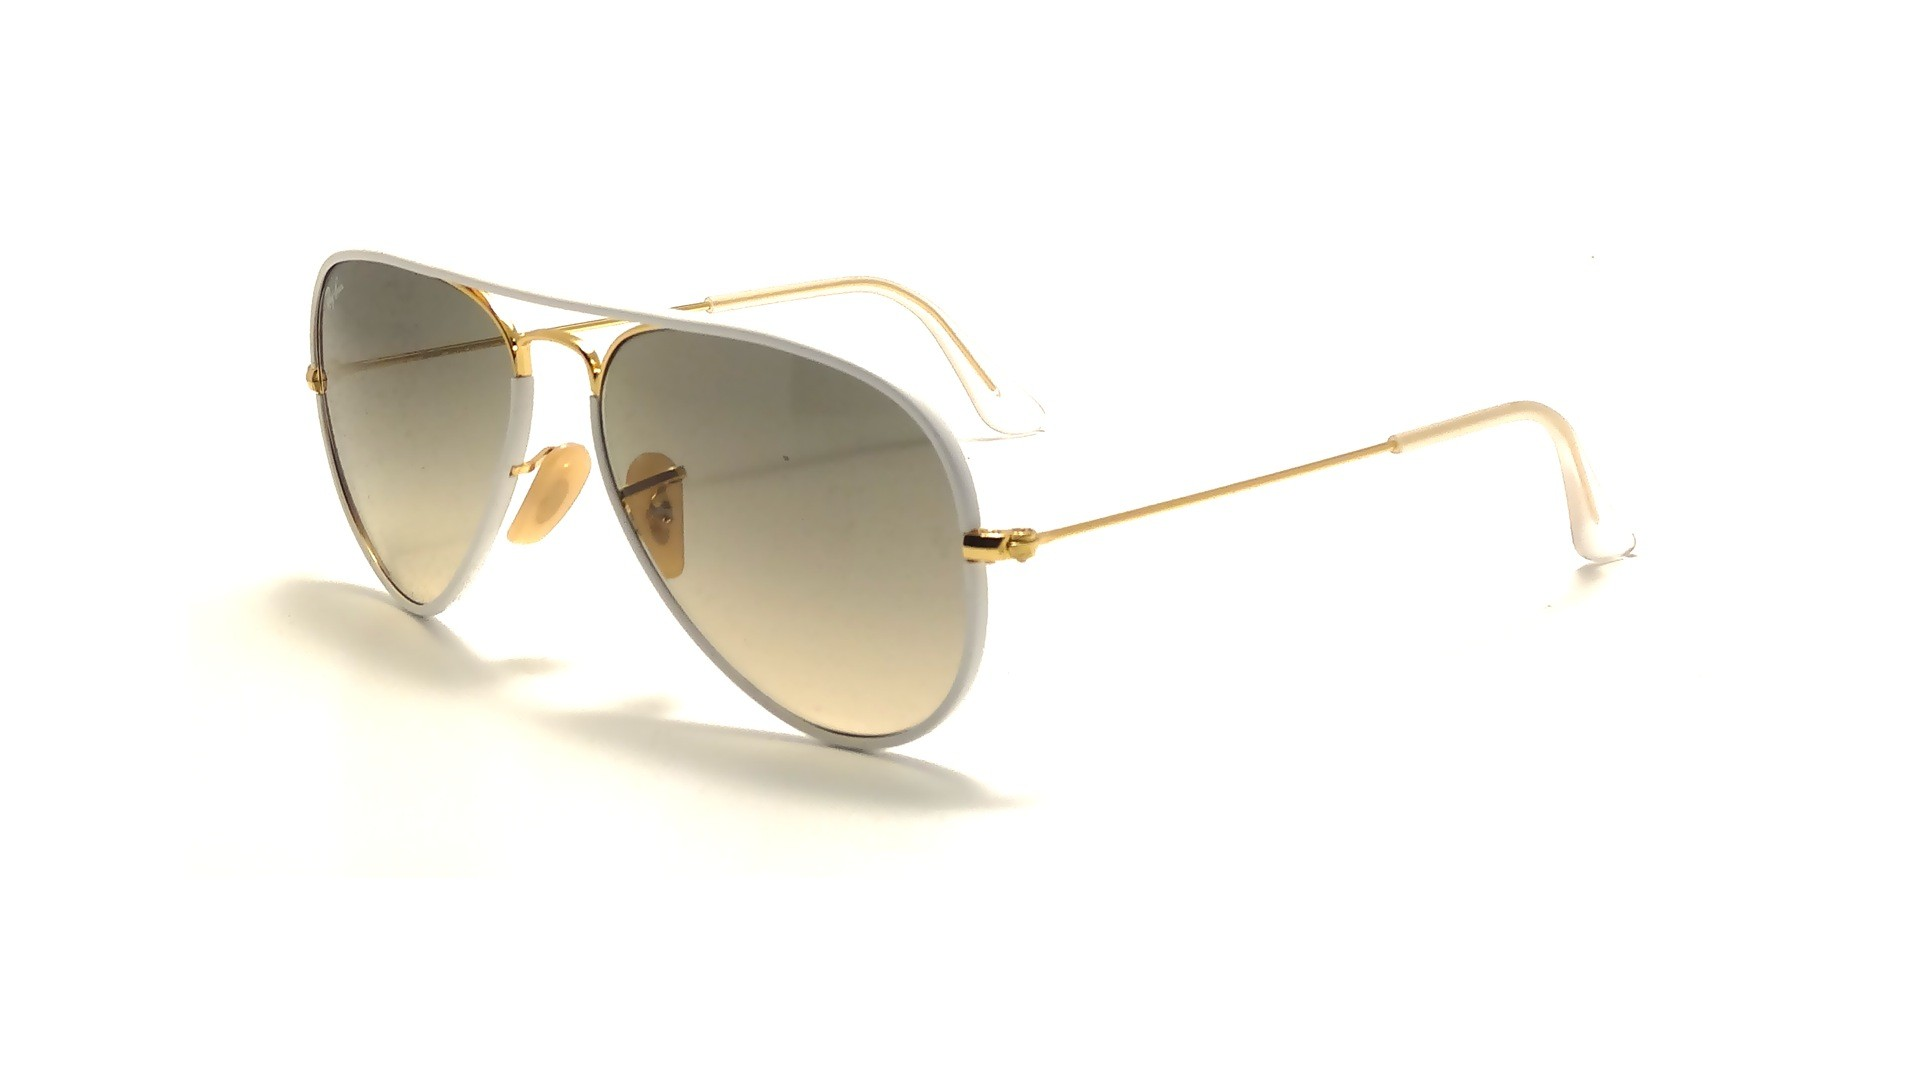 ray ban aviator full color white rb3025jm 146 32 55 14 visiofactory